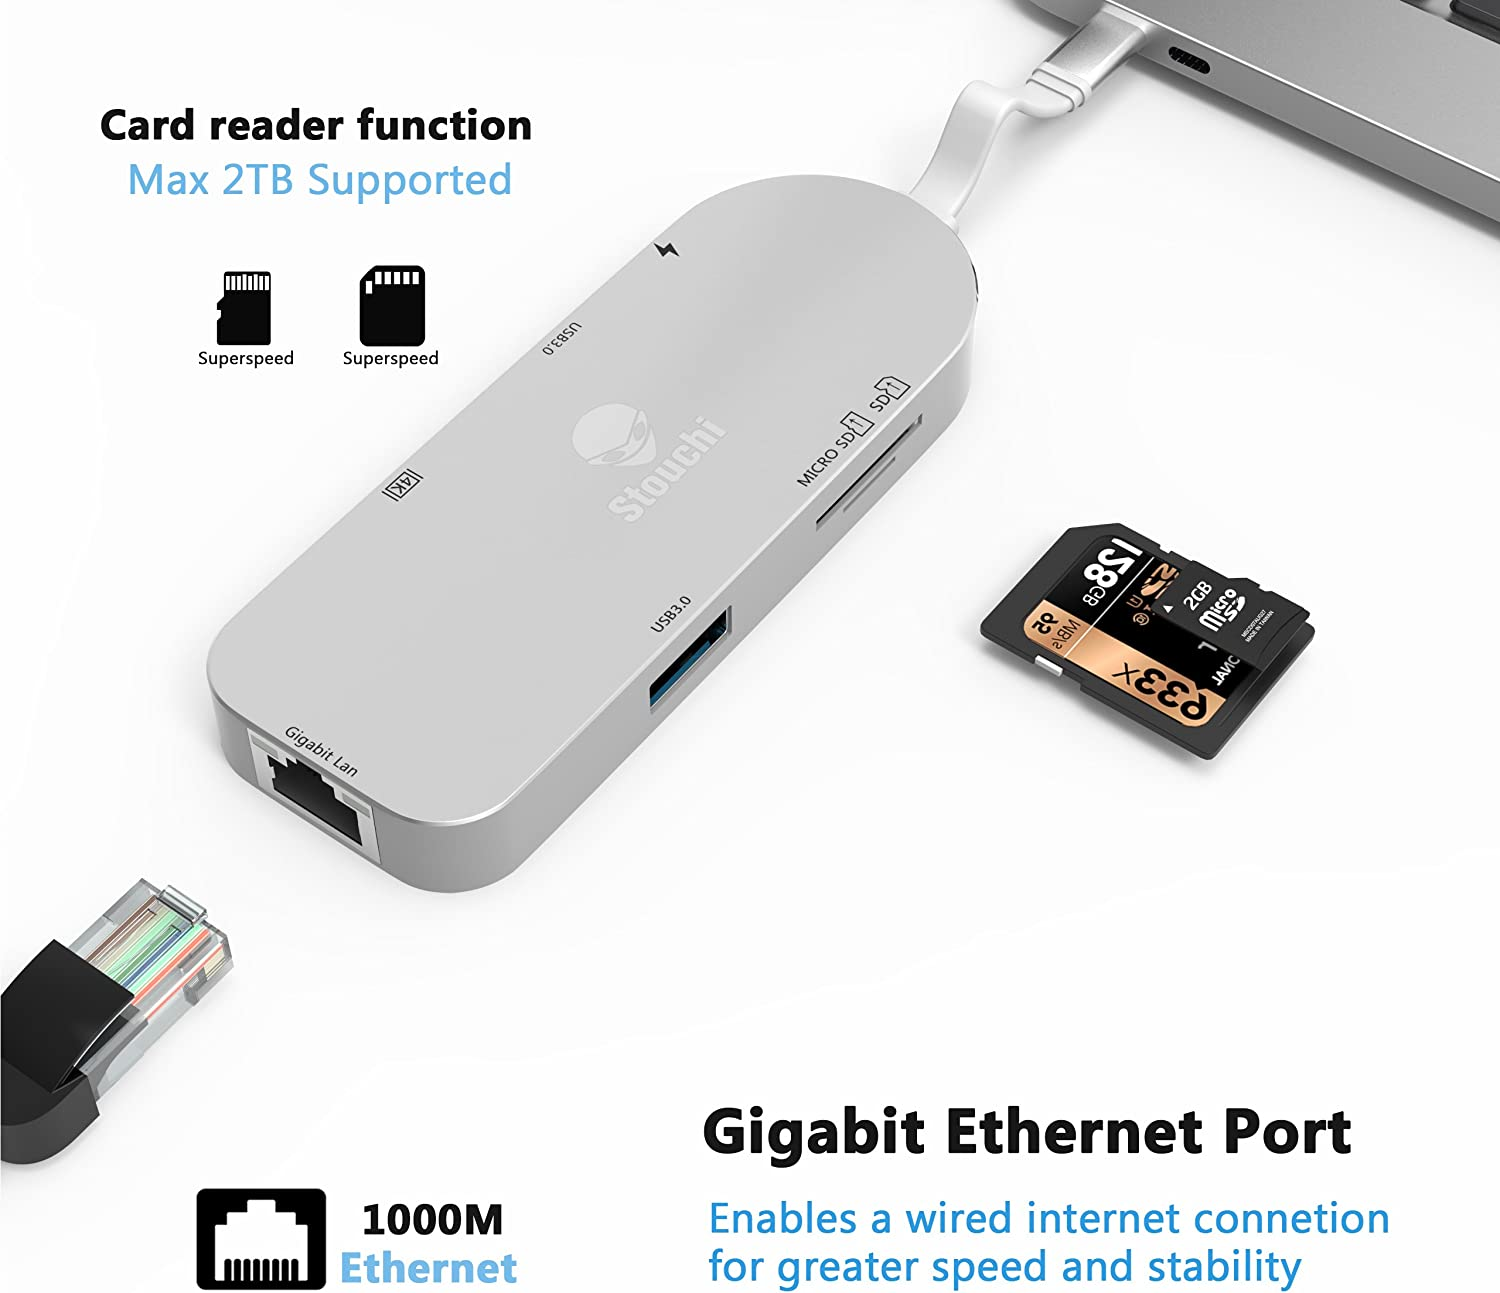 4K HDMI Video Output,SD//Micro Card Reader RJ45 Gigabit E Macbook Pro HUB 2 USB 3.0 Ports USB C to Gigabit Ethernet HUB Adapter Stouchi 7 in 1 TYPE C Hub Multiport Adapter With Type C Charging Port